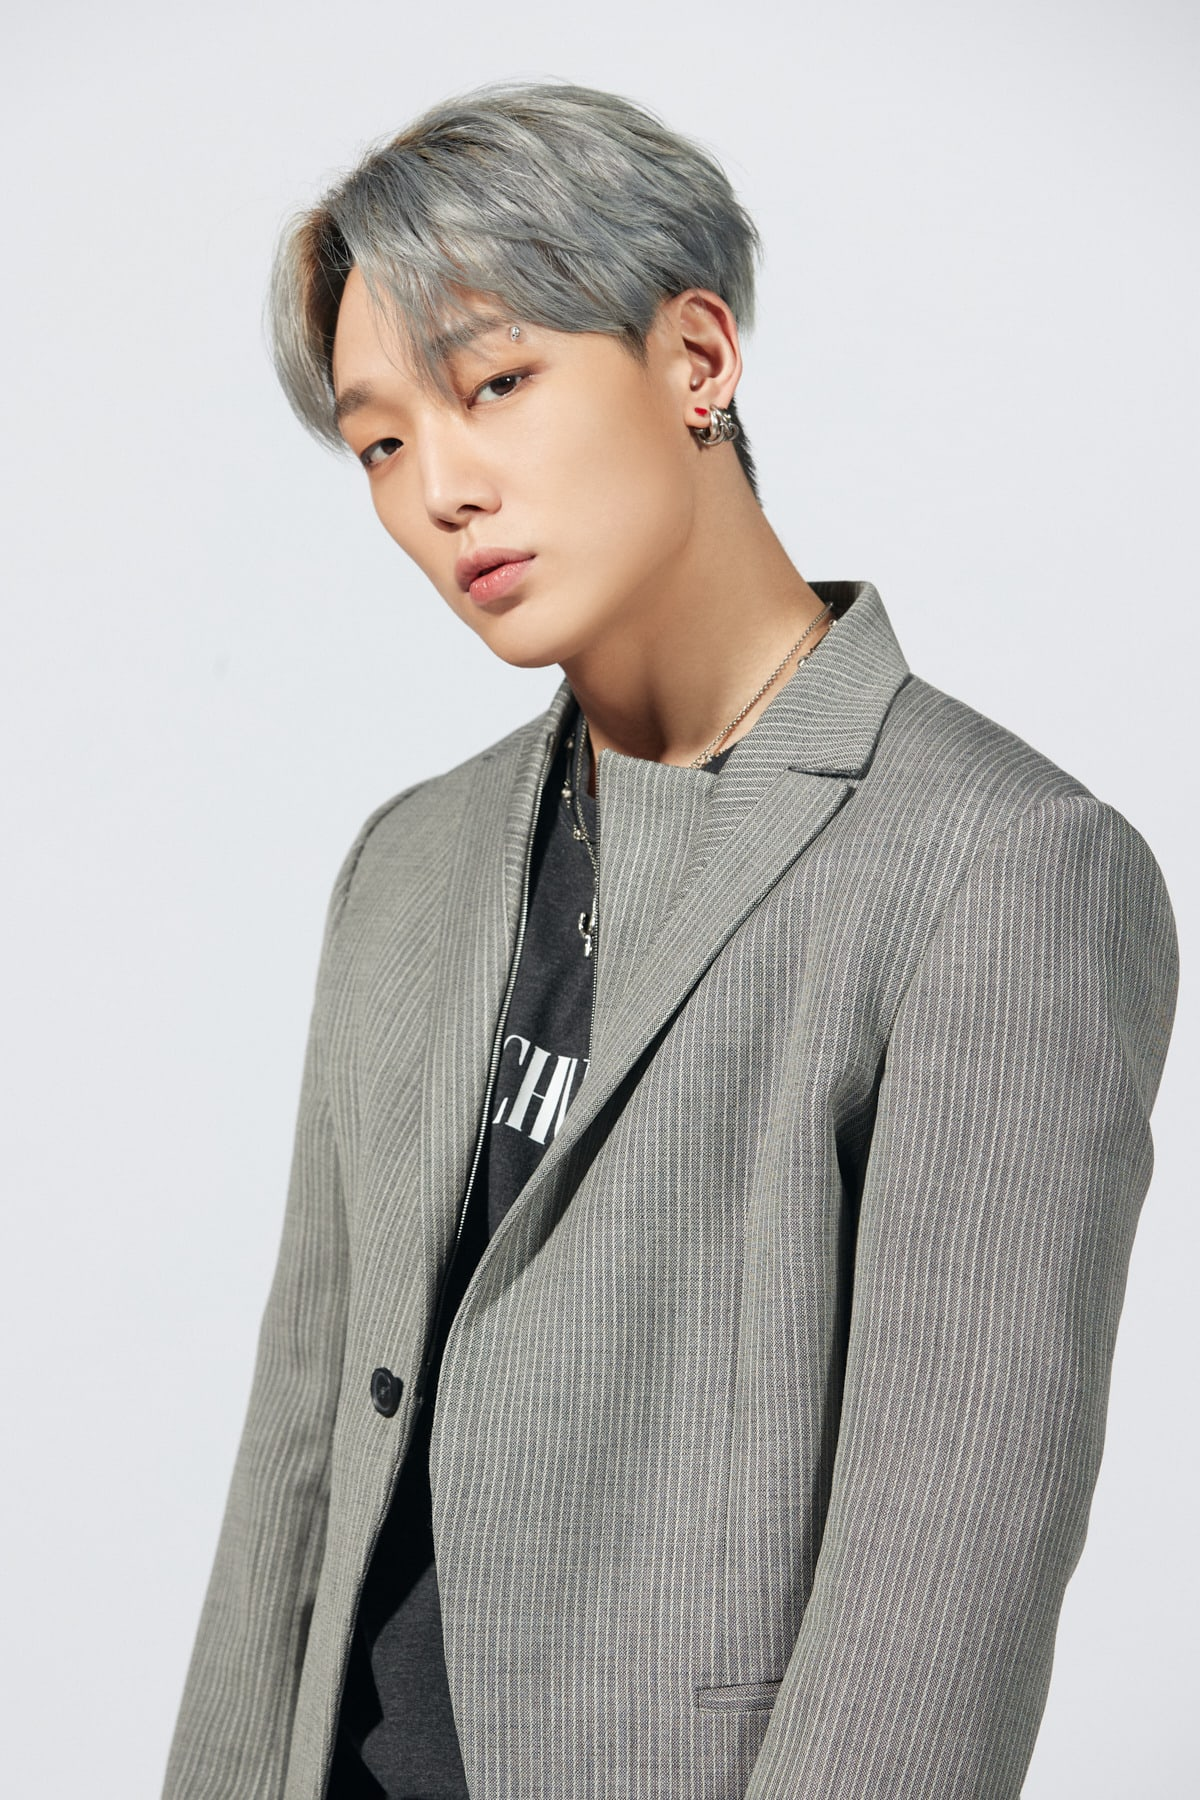 iKON Bobby gave insights into the making of his new solo album!